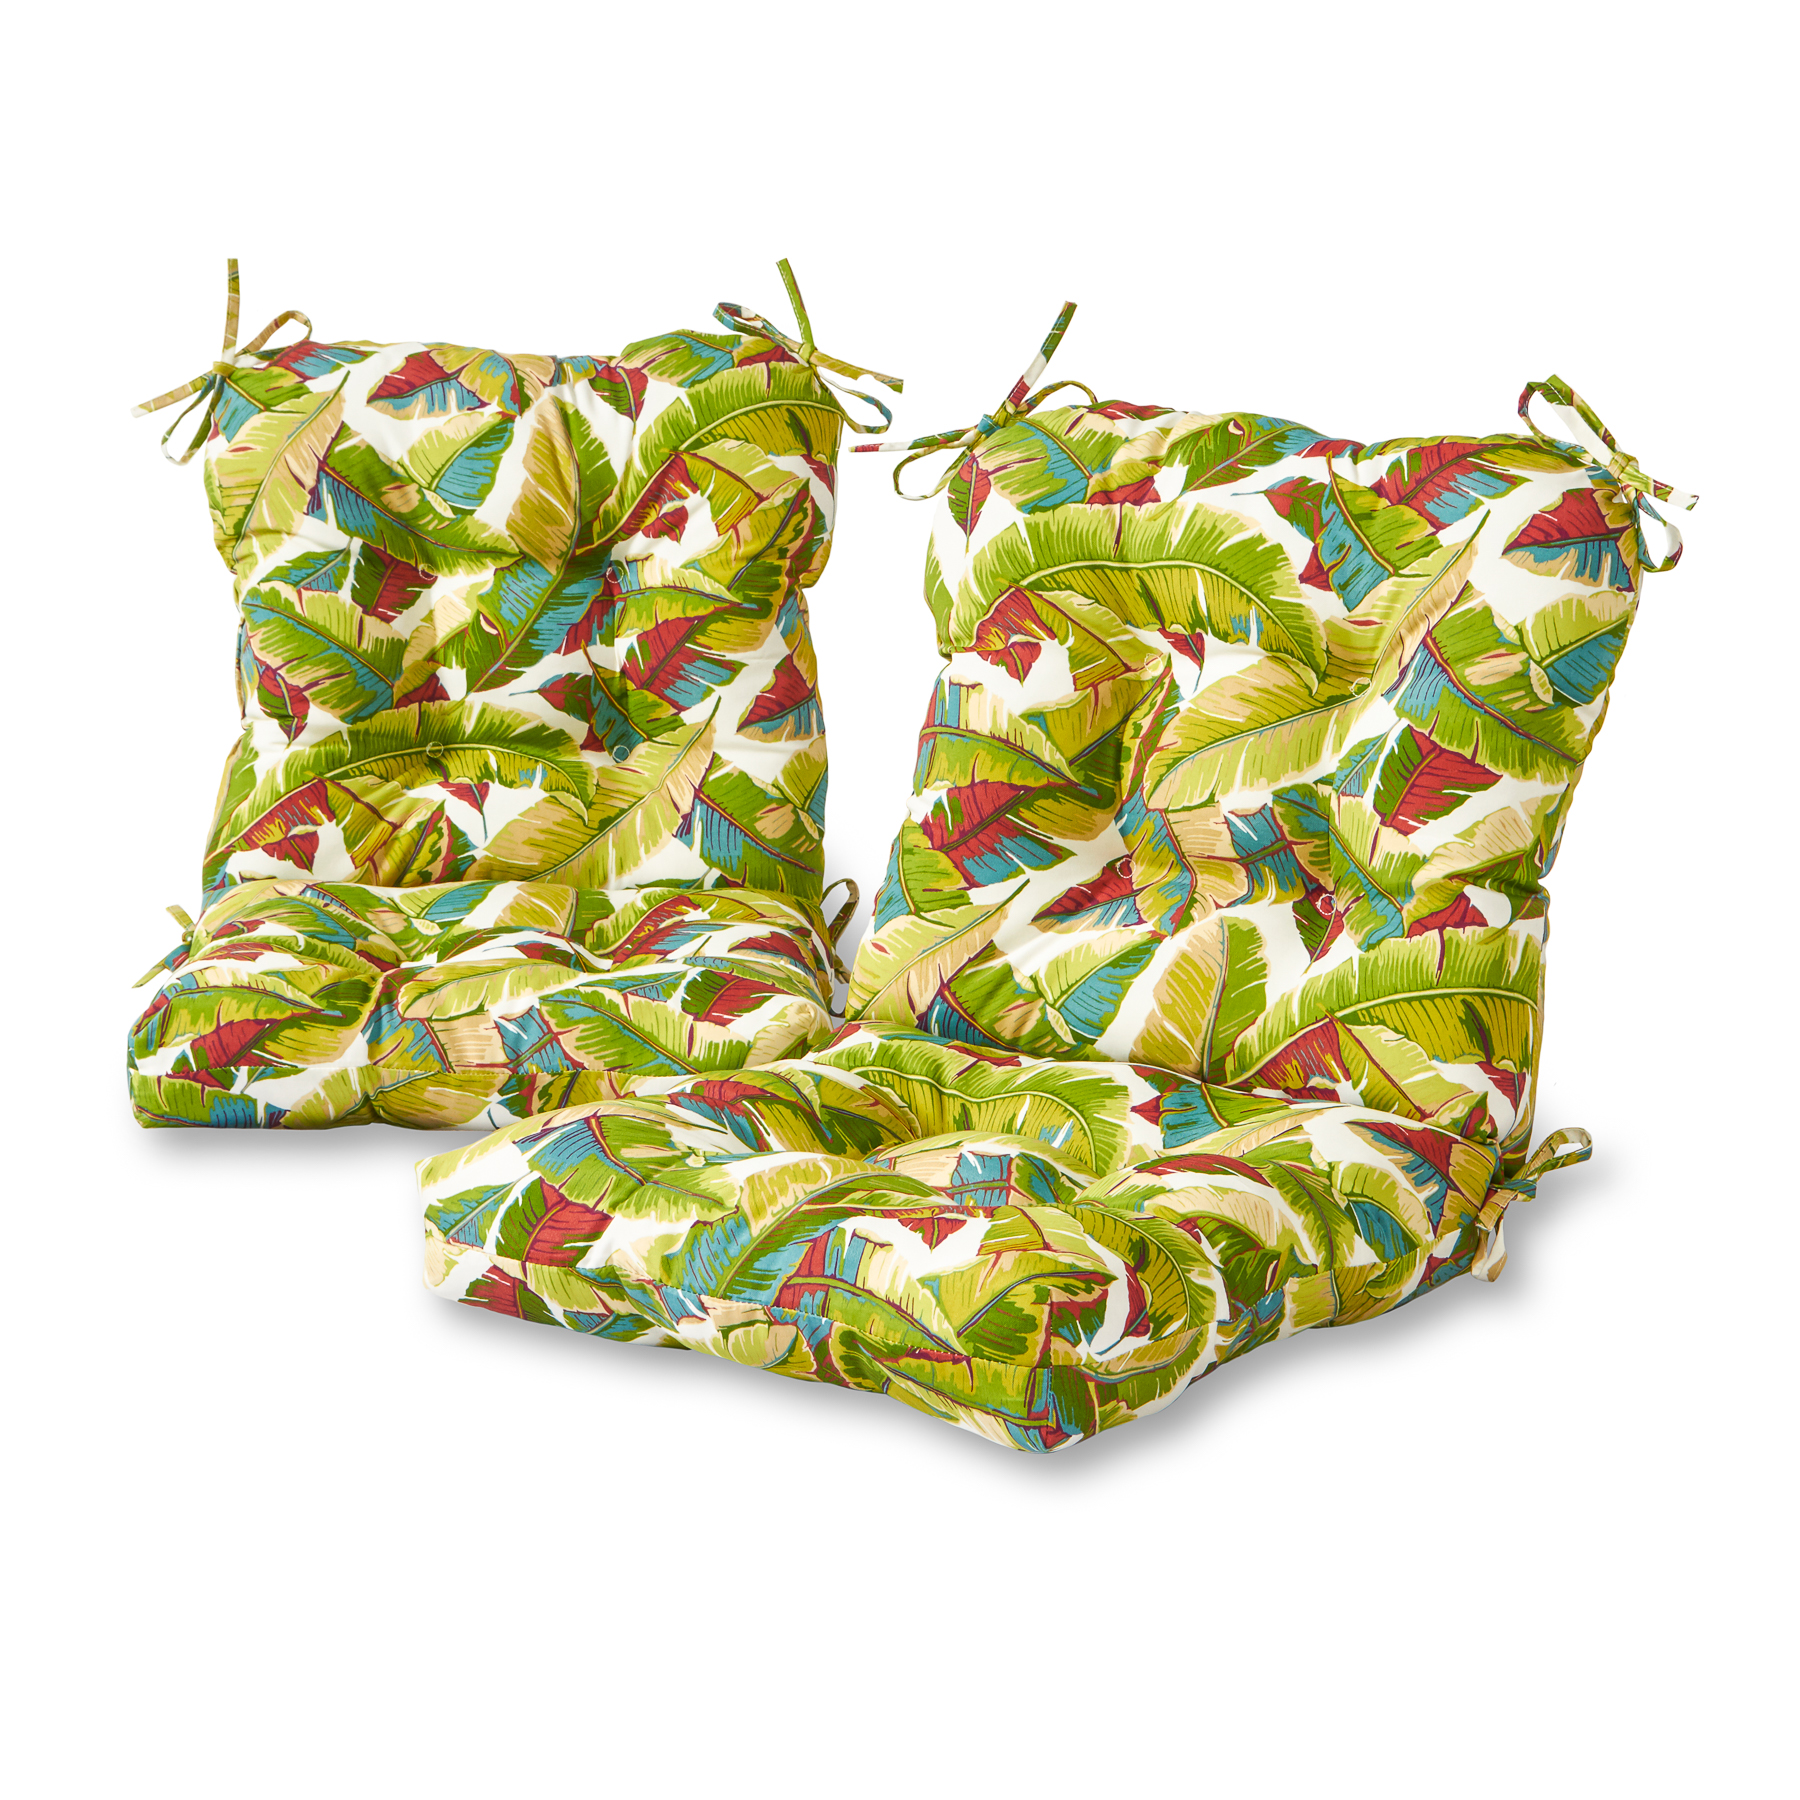 Greendale Home Fashions Palm Leaves Outdoor Chair Cushion, Set of 2